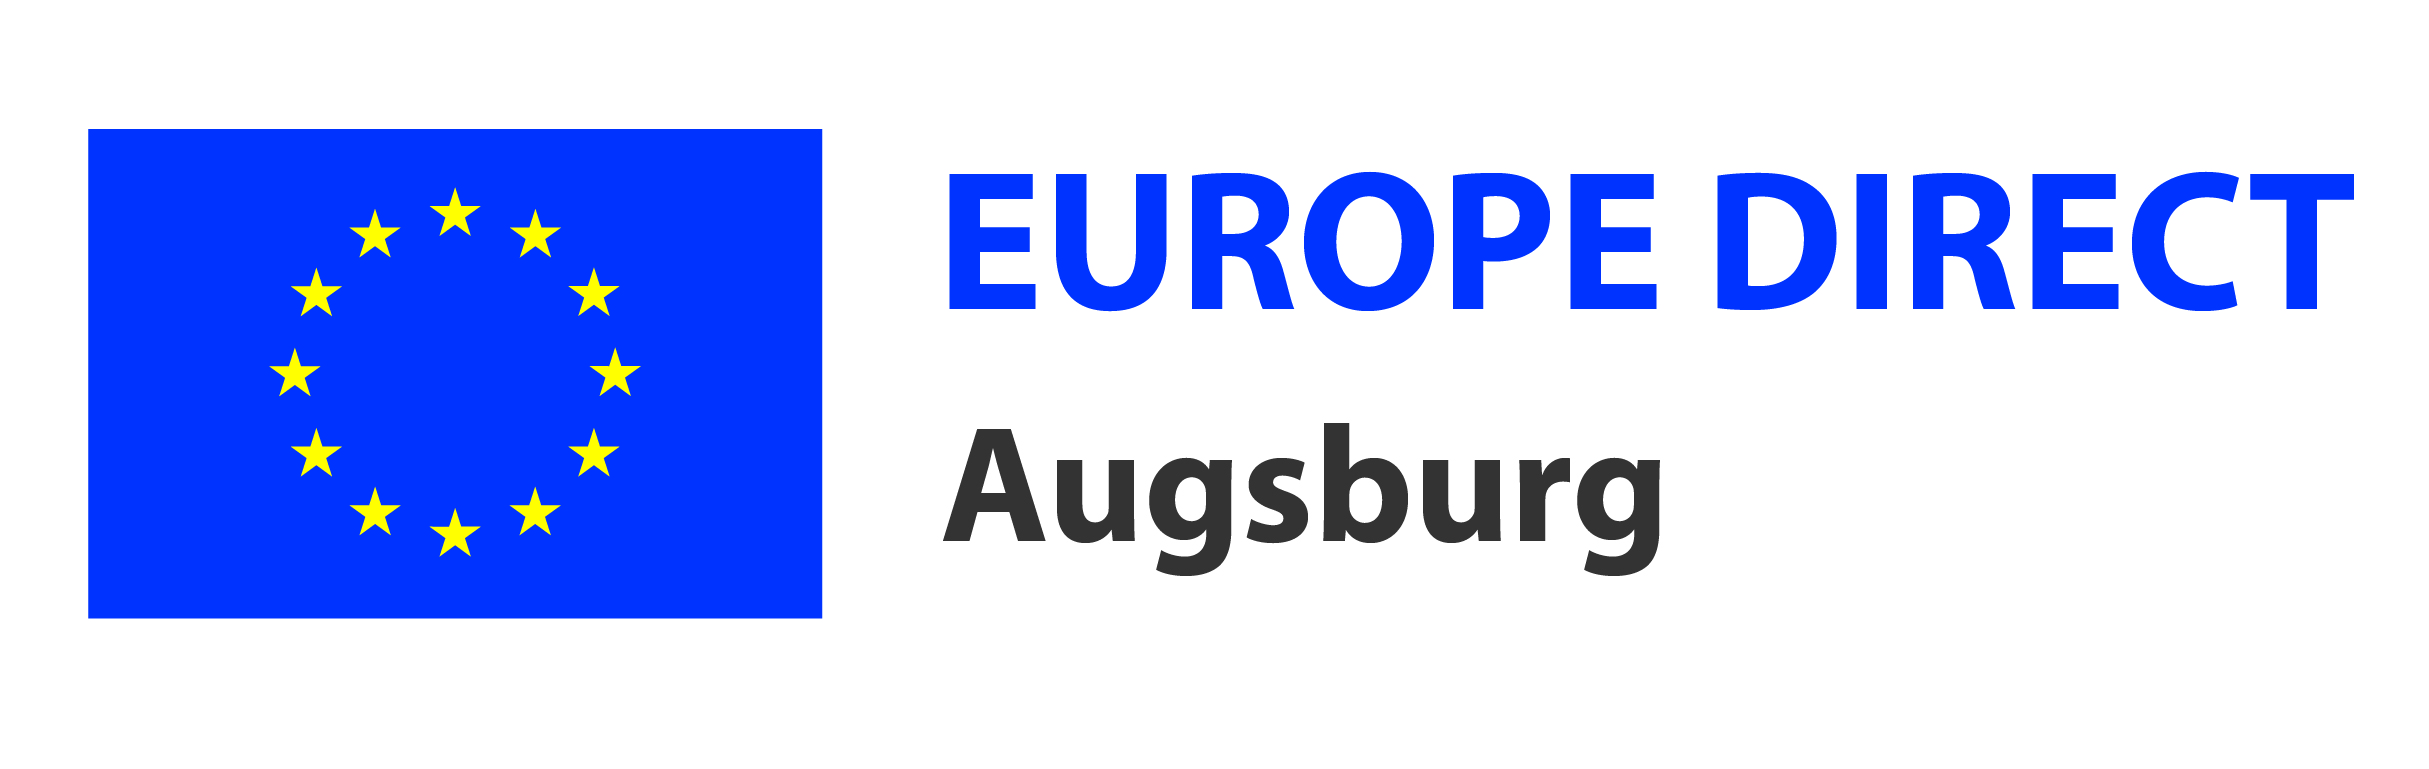 Europe Direct Augsburg